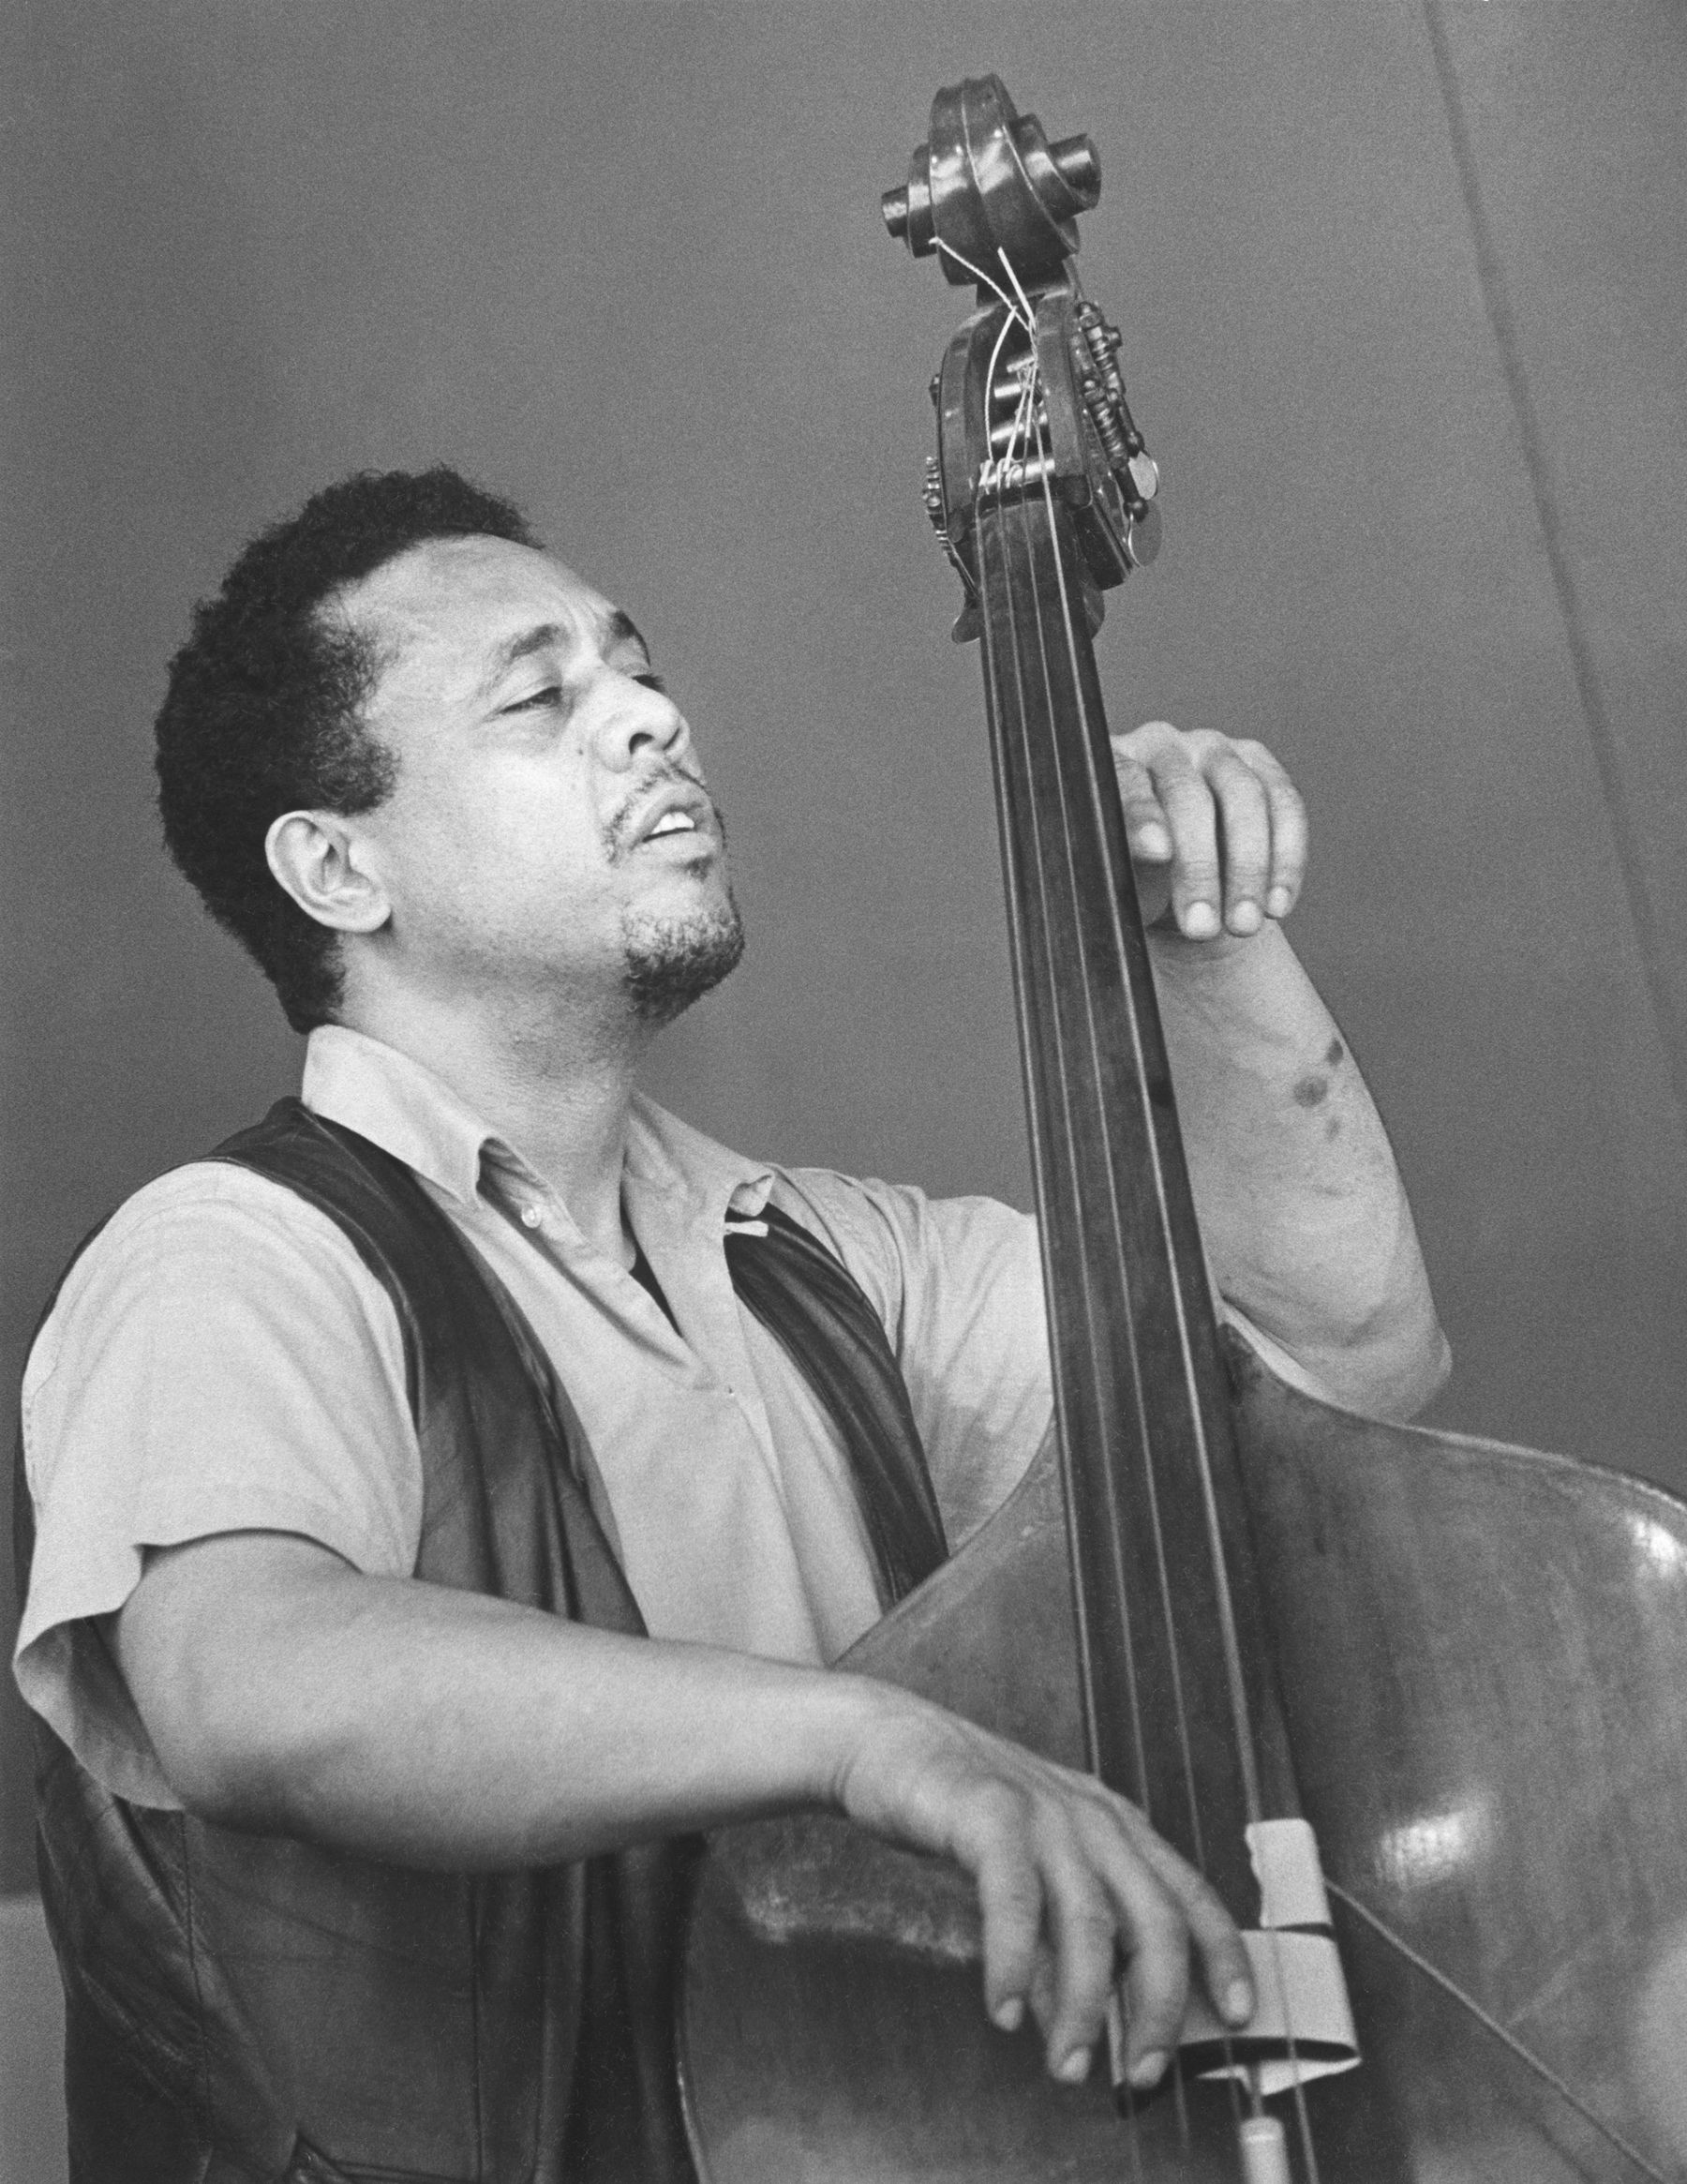 charles mingus introduction of the stand up bass Charles mingus jr (april 22, 1922 - january 5, 1979) was an american jazz double bassist, composer and bandleaderhis compositions retained the hot and soulful feel of hard bop, drawing heavily from black gospel music and blues, while sometimes containing elements of third stream, free jazz, and classical music.